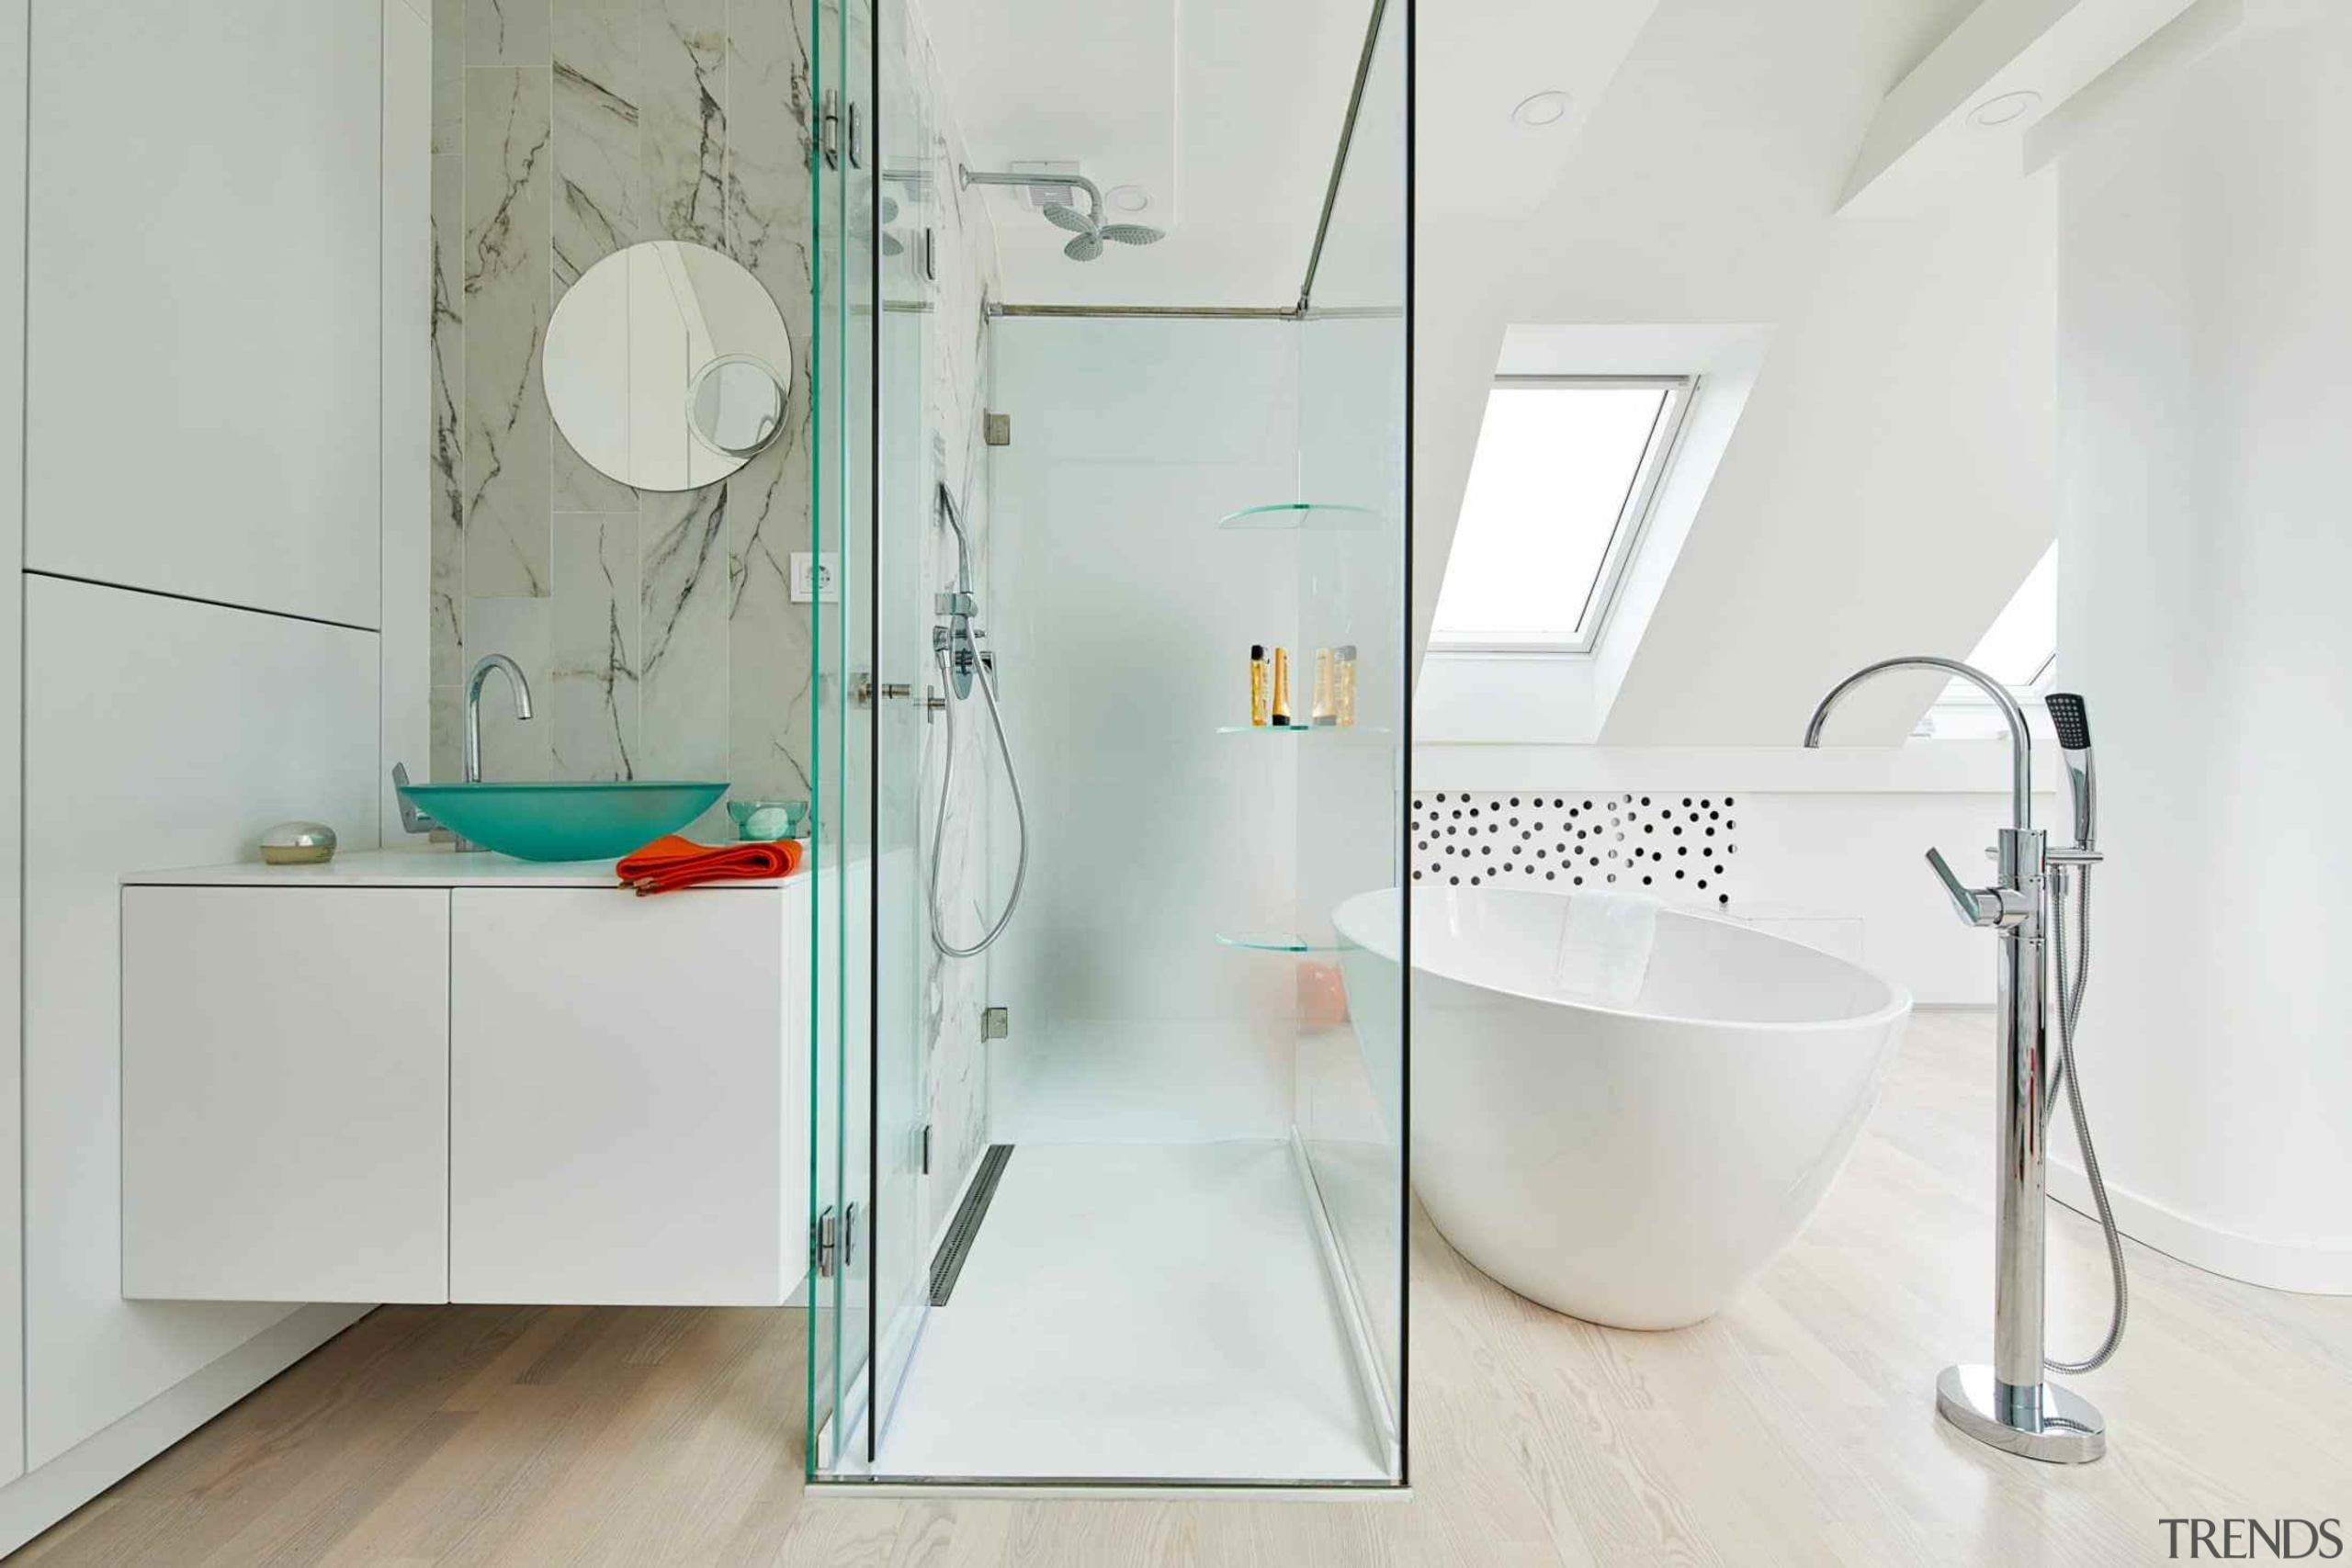 Bathroom in colourful Budapest apartment by Margeza Design angle, bathroom, glass, plumbing fixture, tap, white, gray